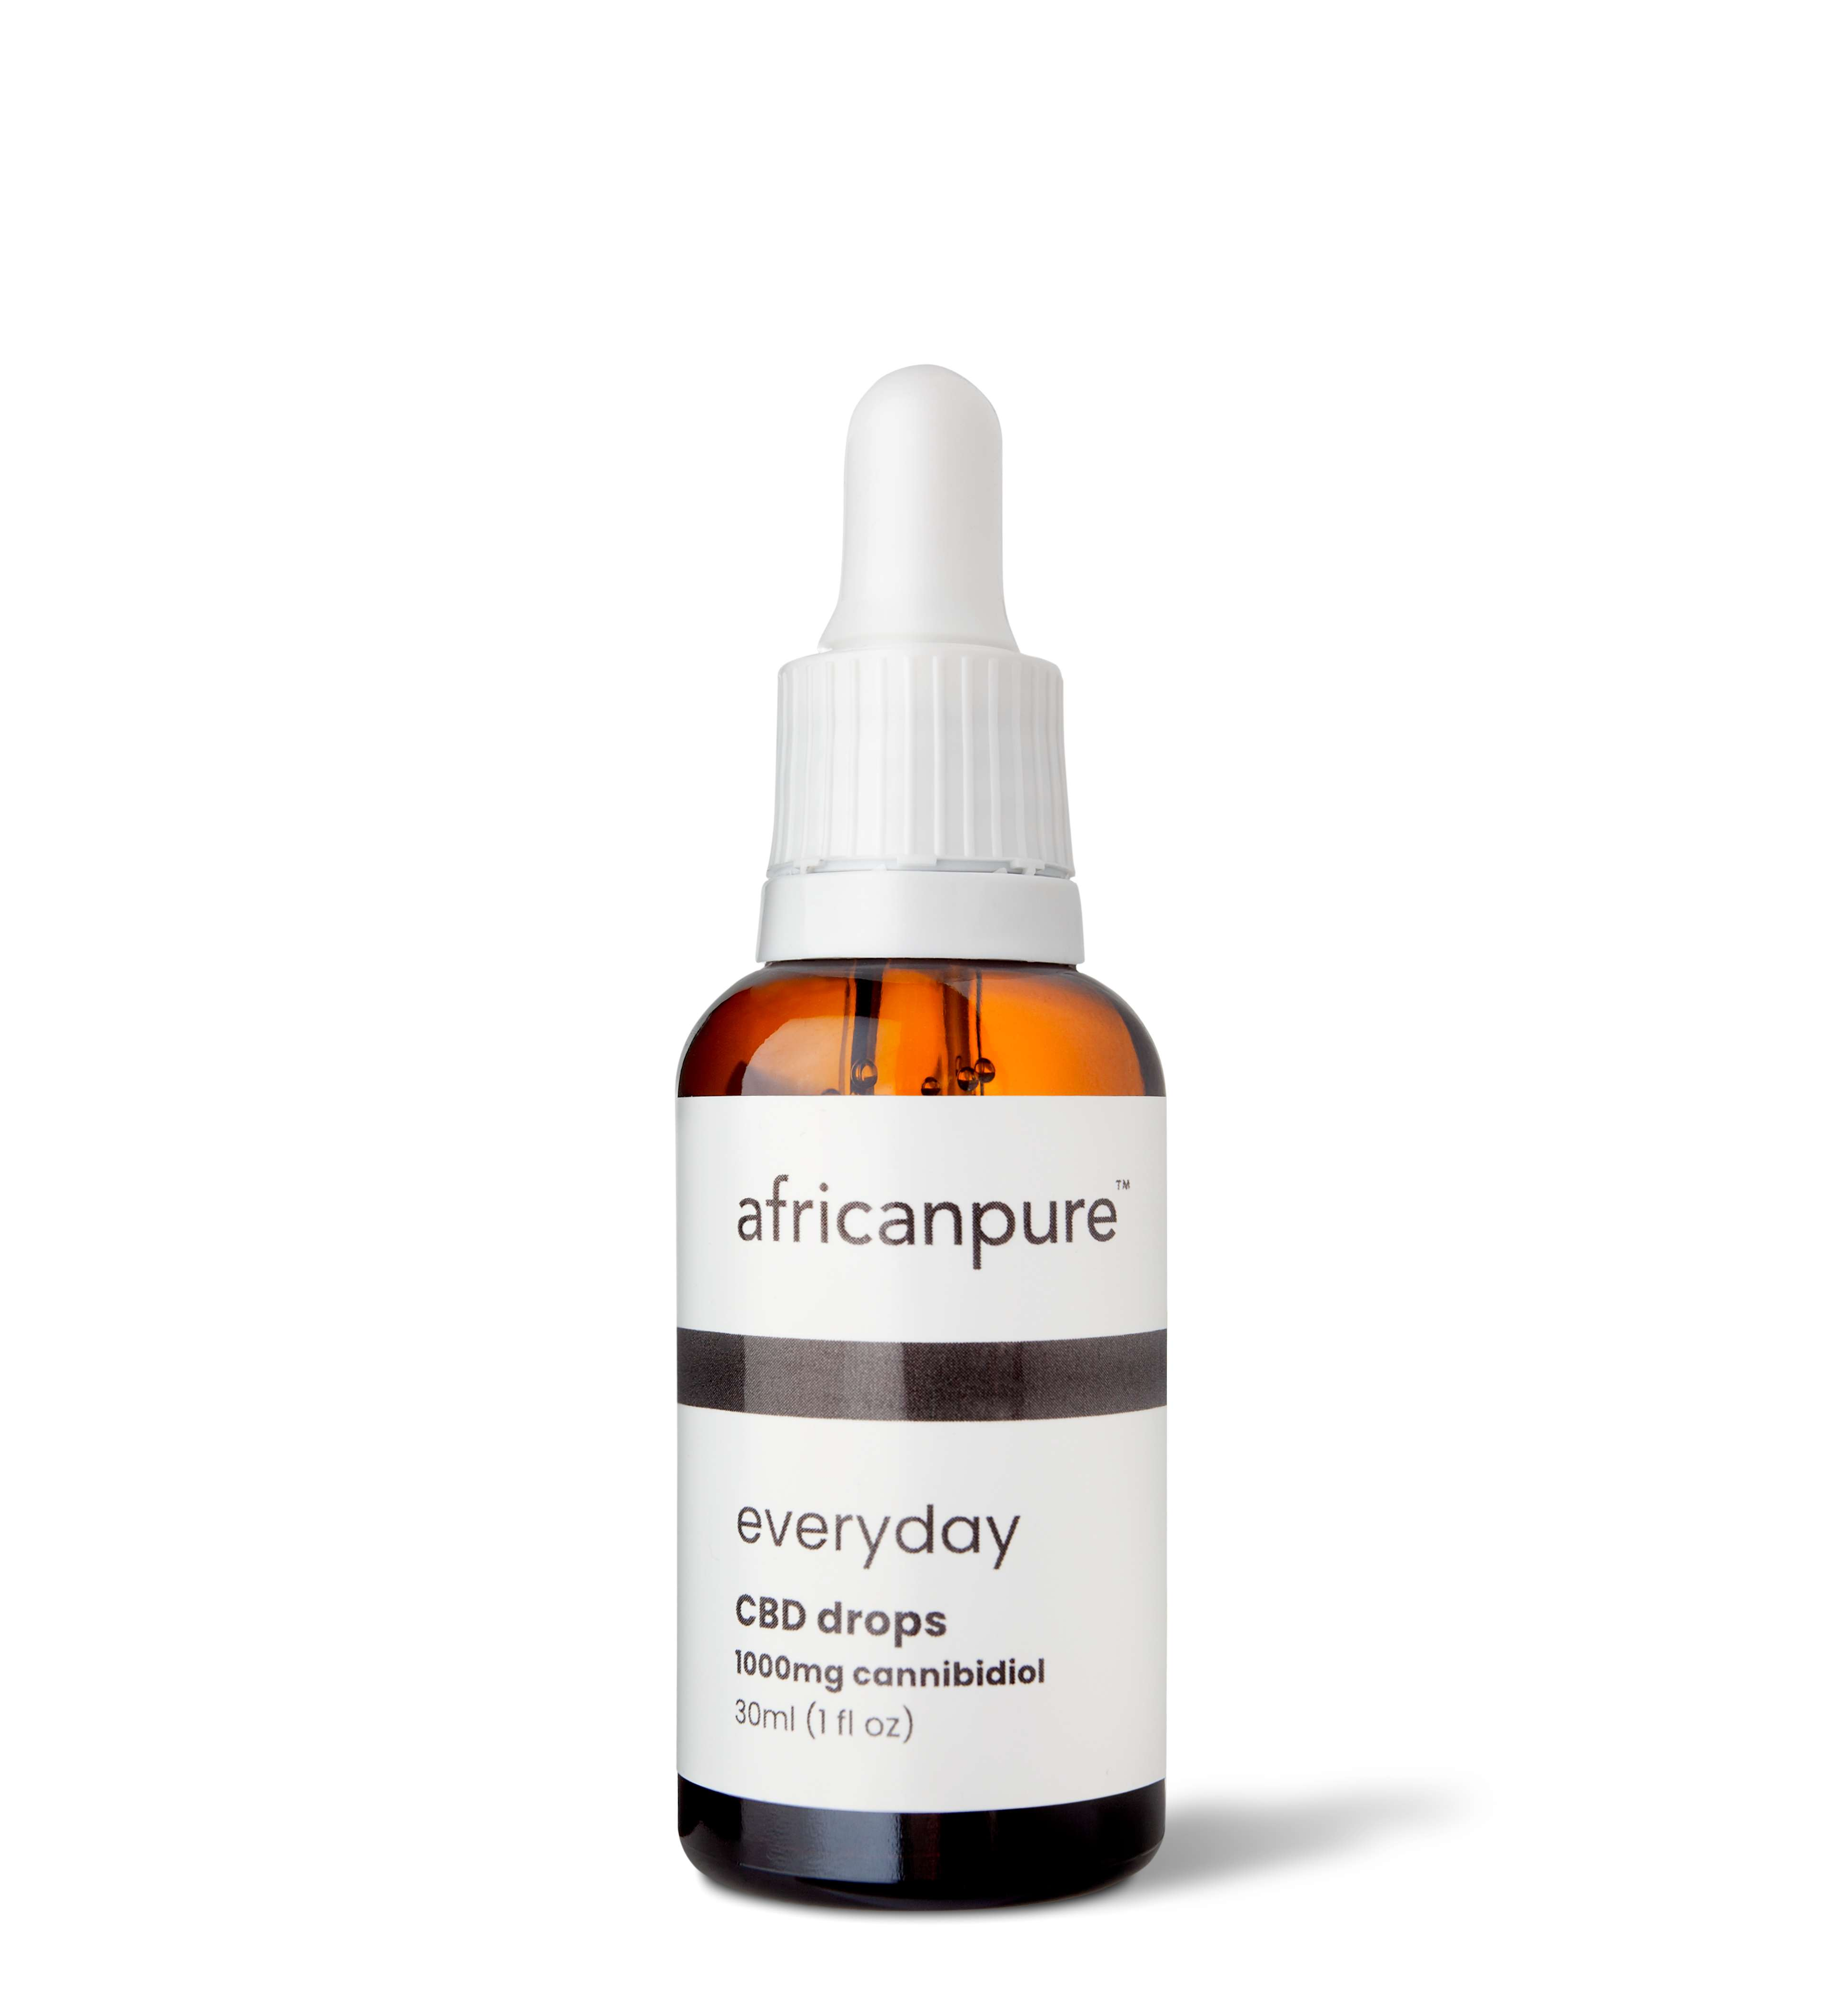 AfricanPure CBD Oil Review